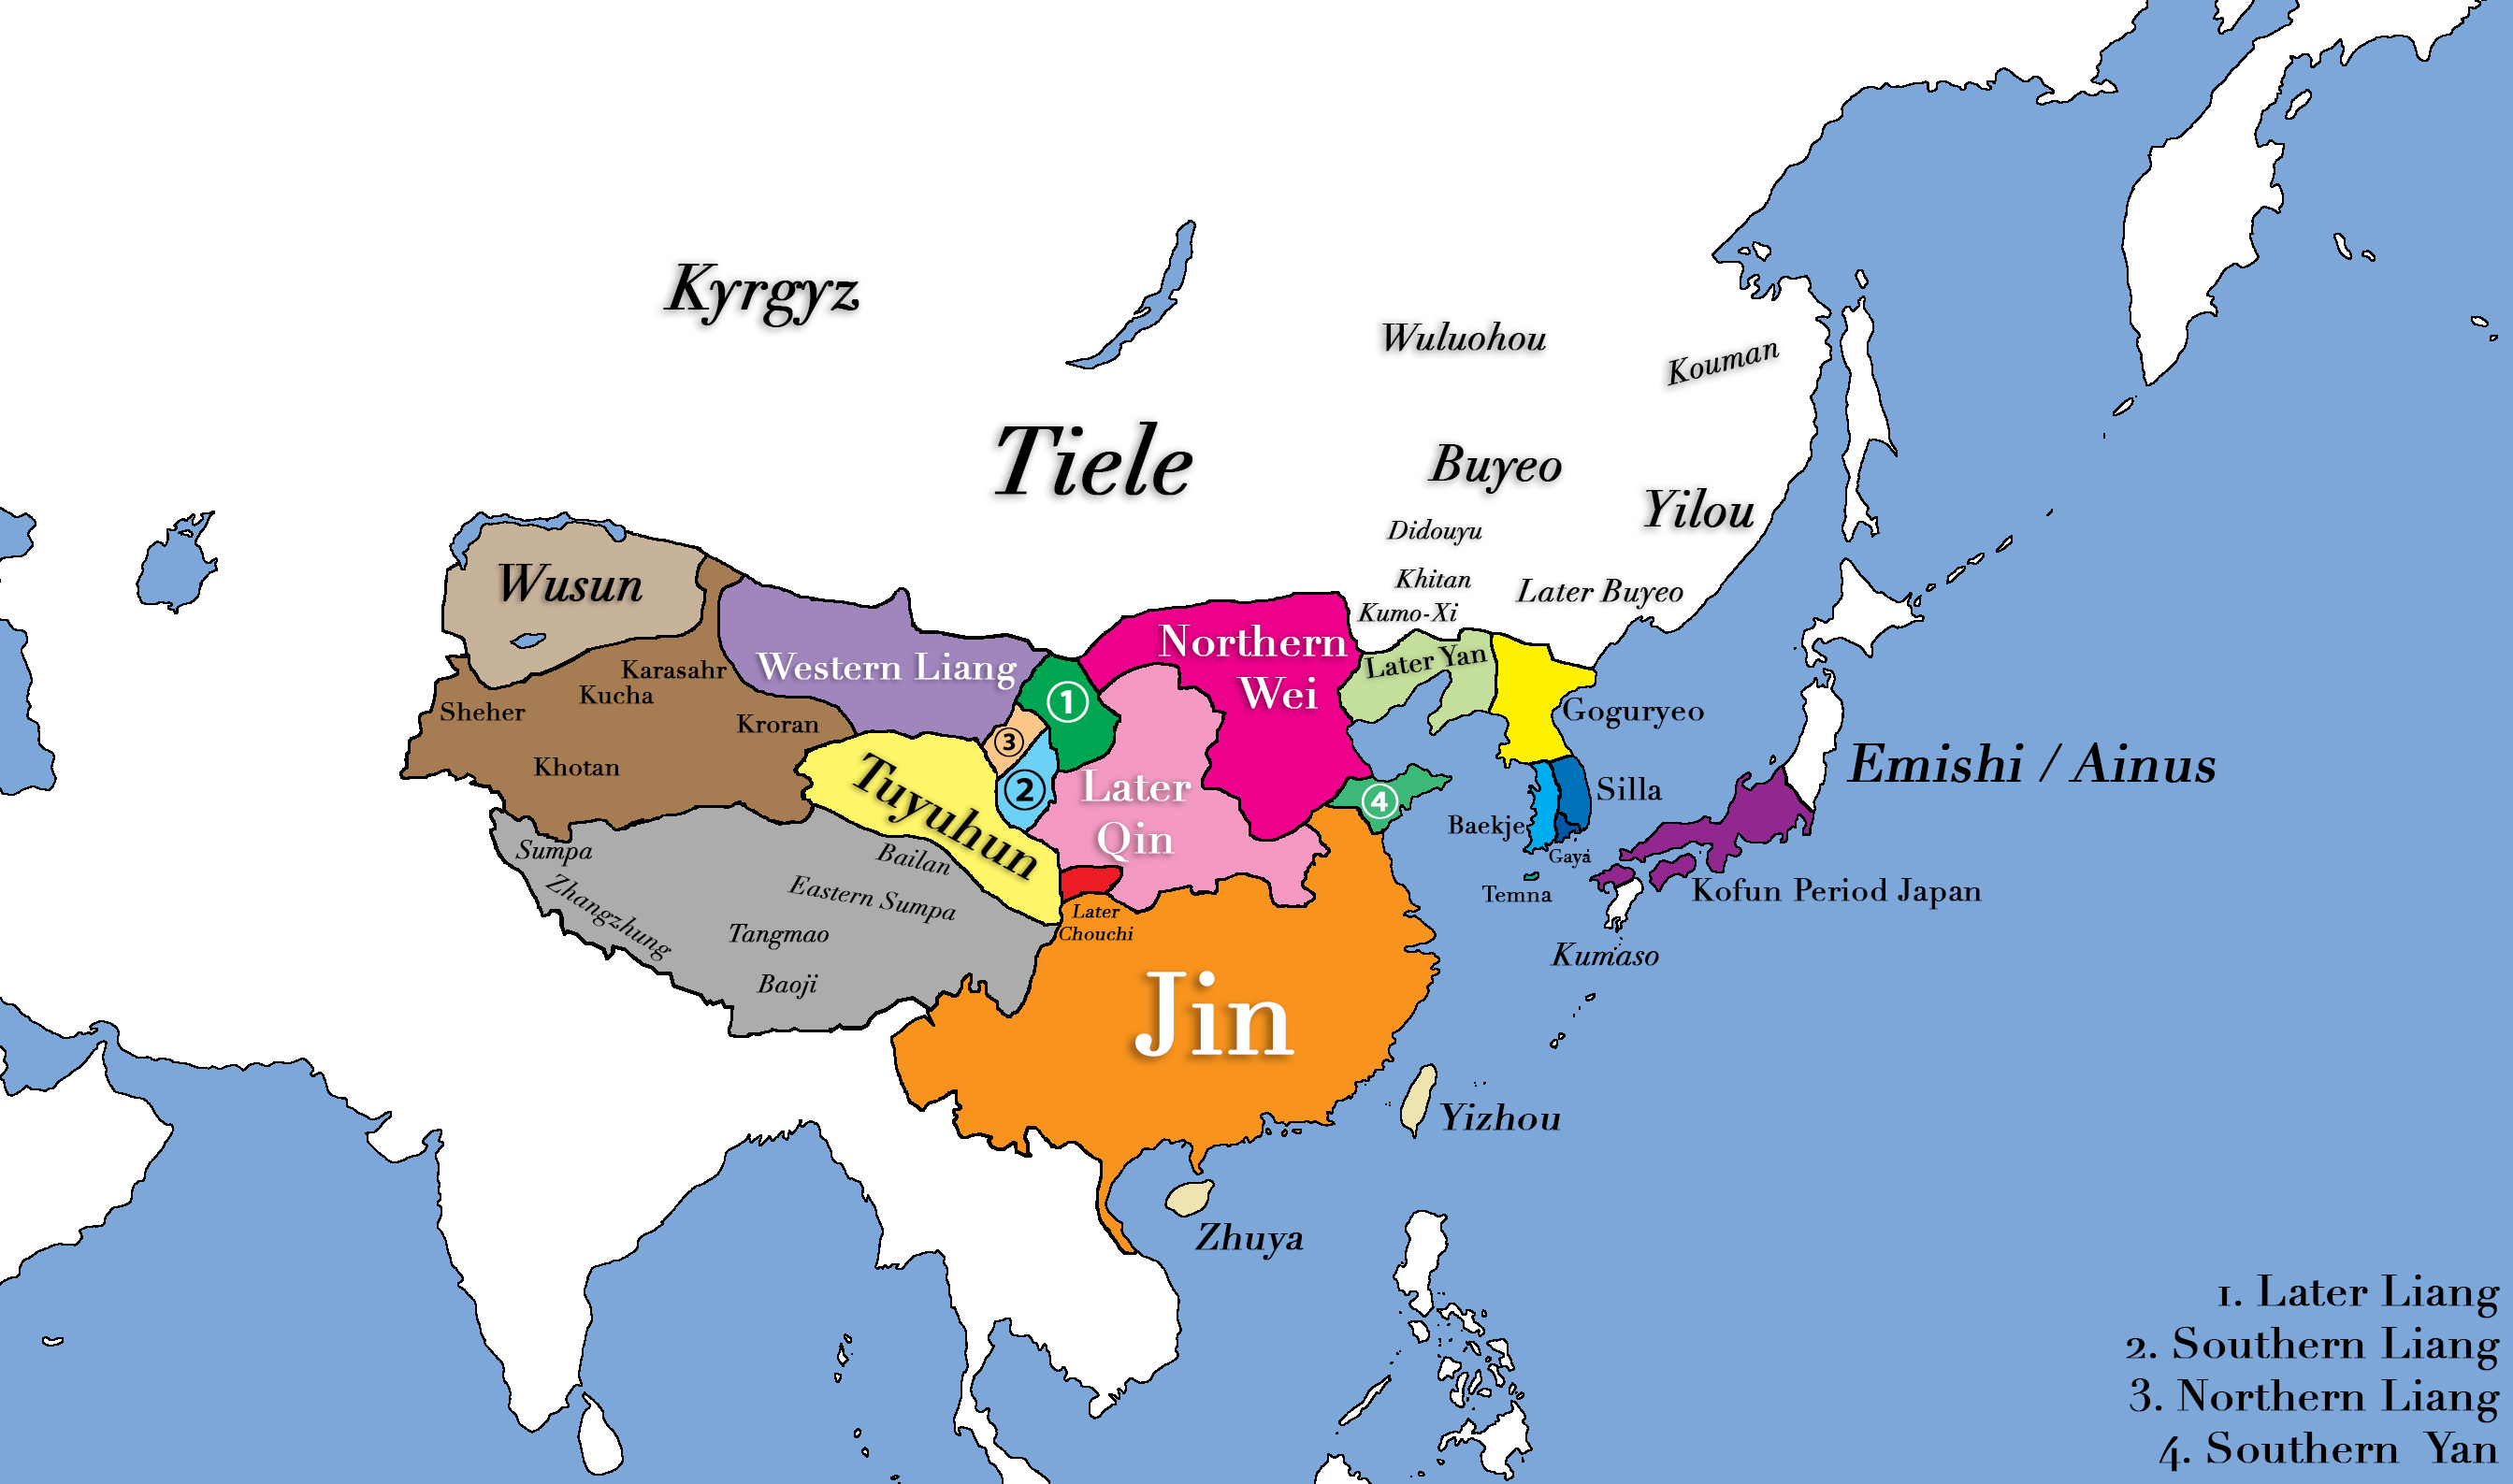 East Asia in 400 CE (Illustration)   Ancient History Encyclopedia